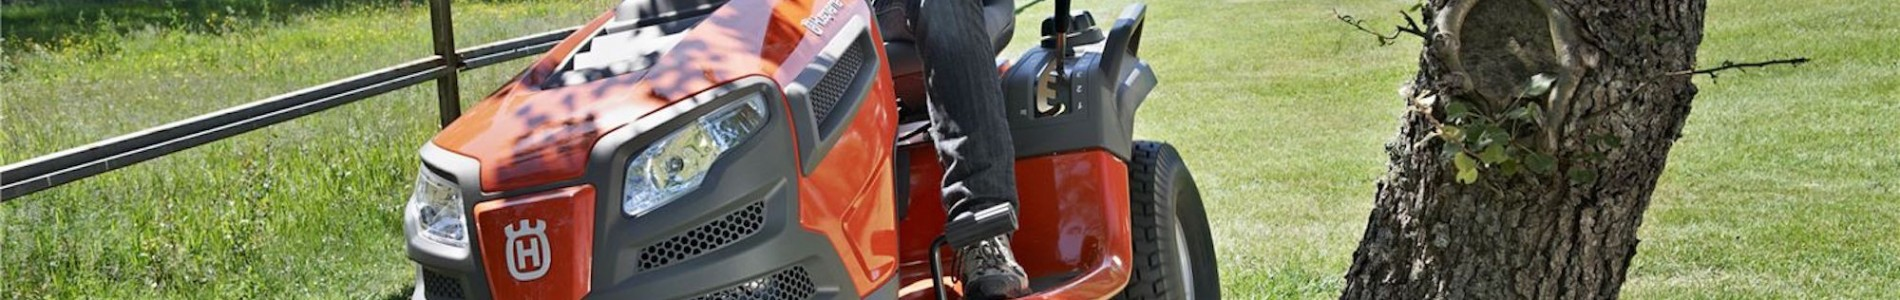 Lawn Mowing Tractors